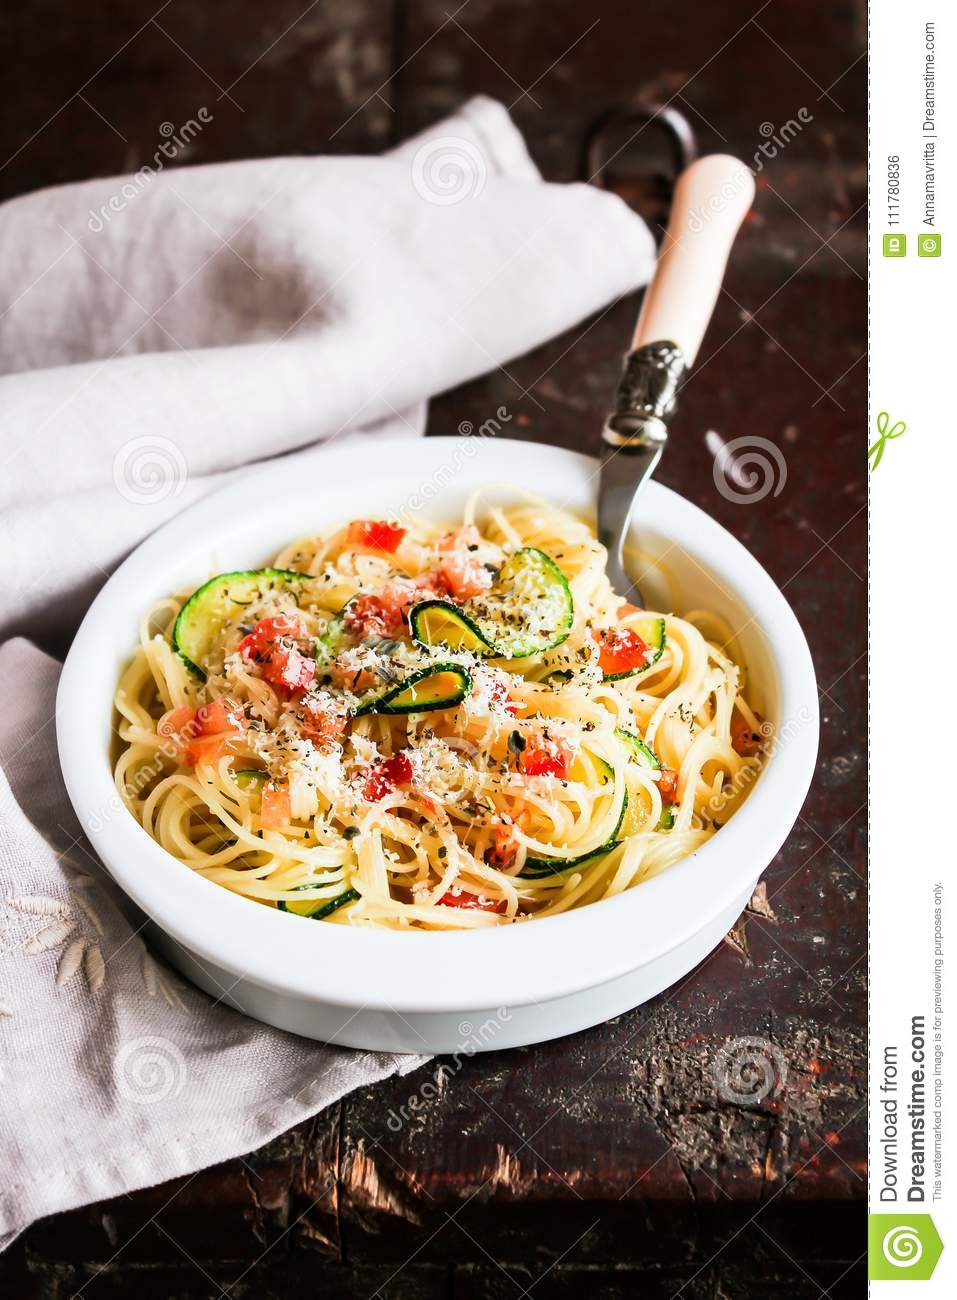 Homemade whole wheat spaghetti pasta with ripe tomatoes, caramelised courgette or zucchini, freshle grated parmesan cheese in a bo